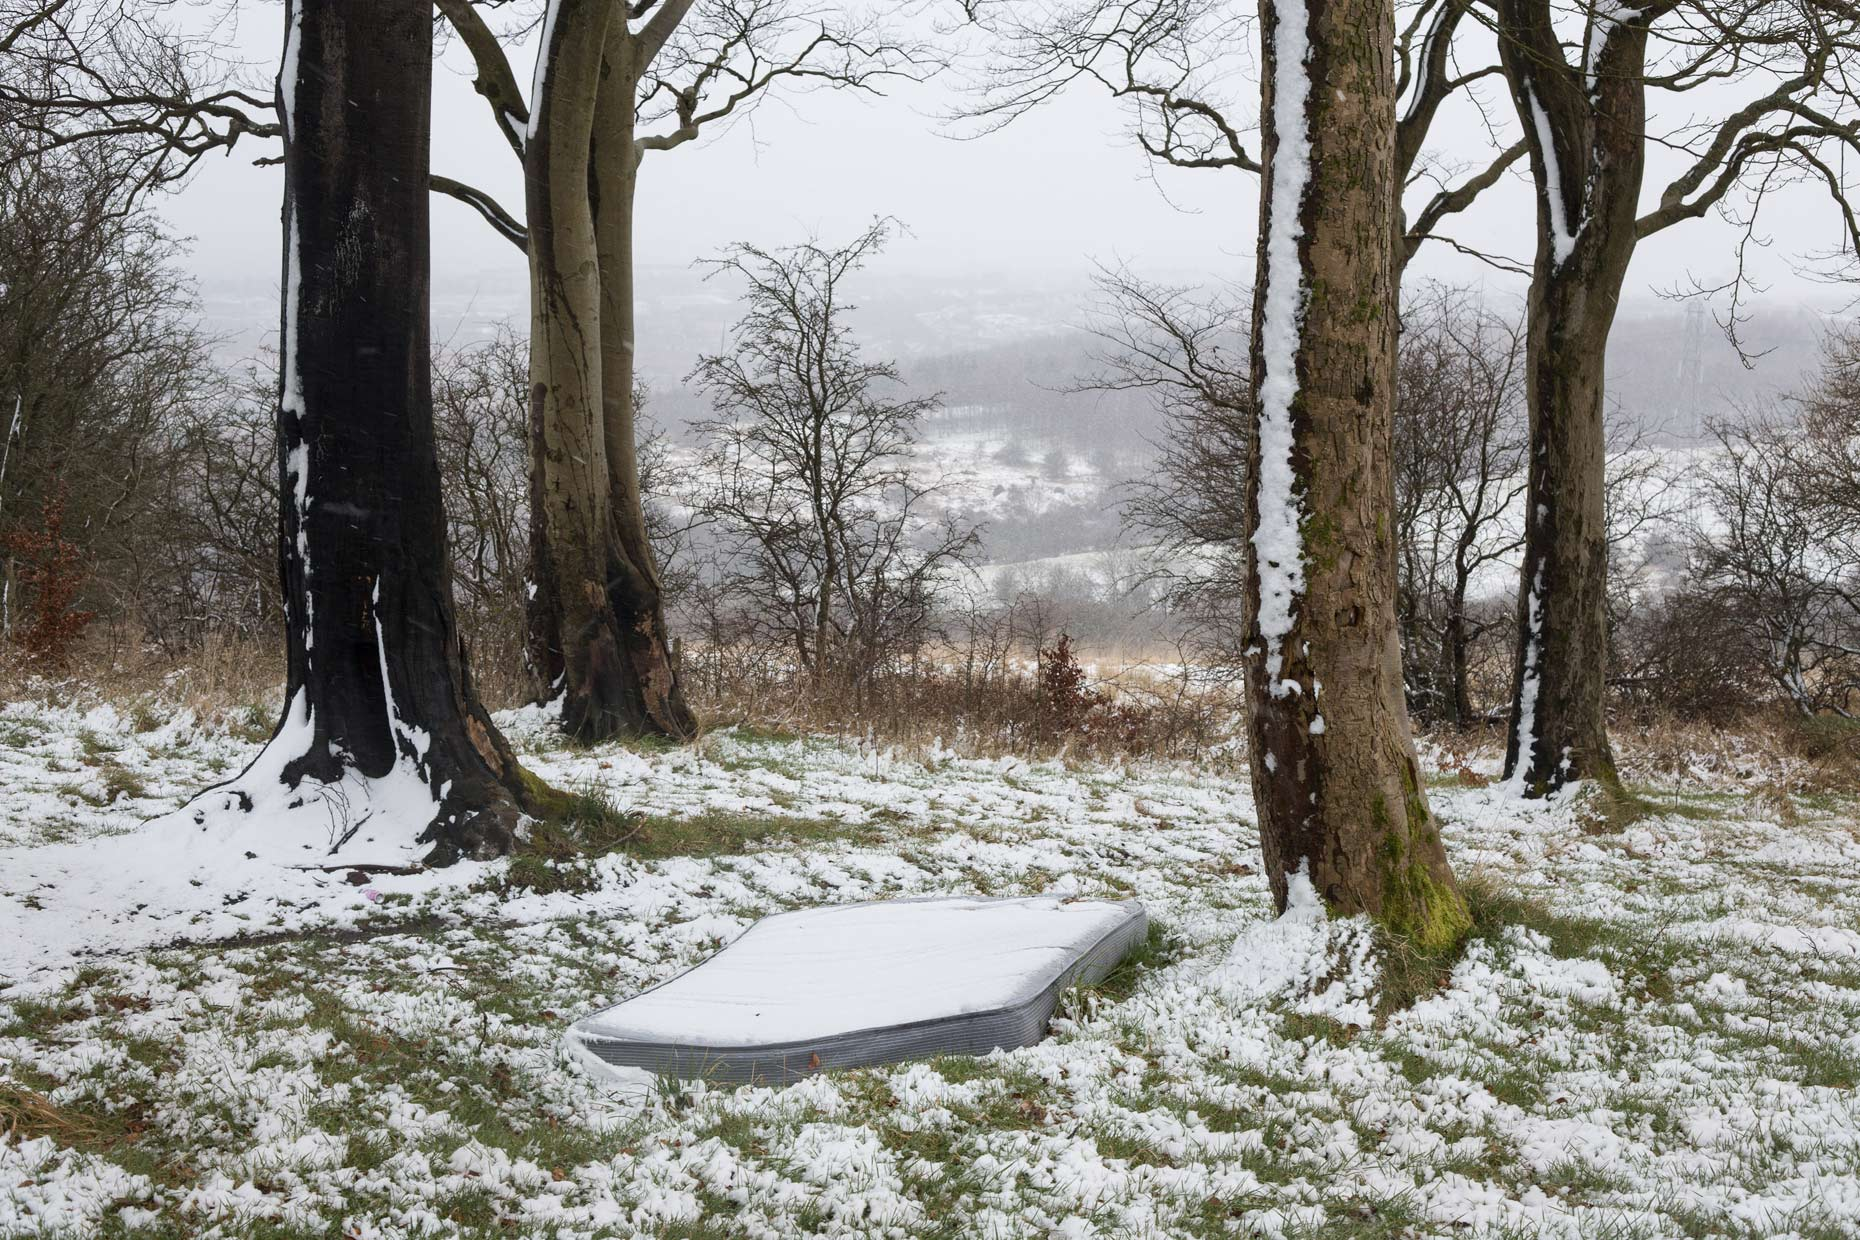 Mattress in the snow on Antonine Wall, Scotland by Glasgow photographer Sutton-Hibbert